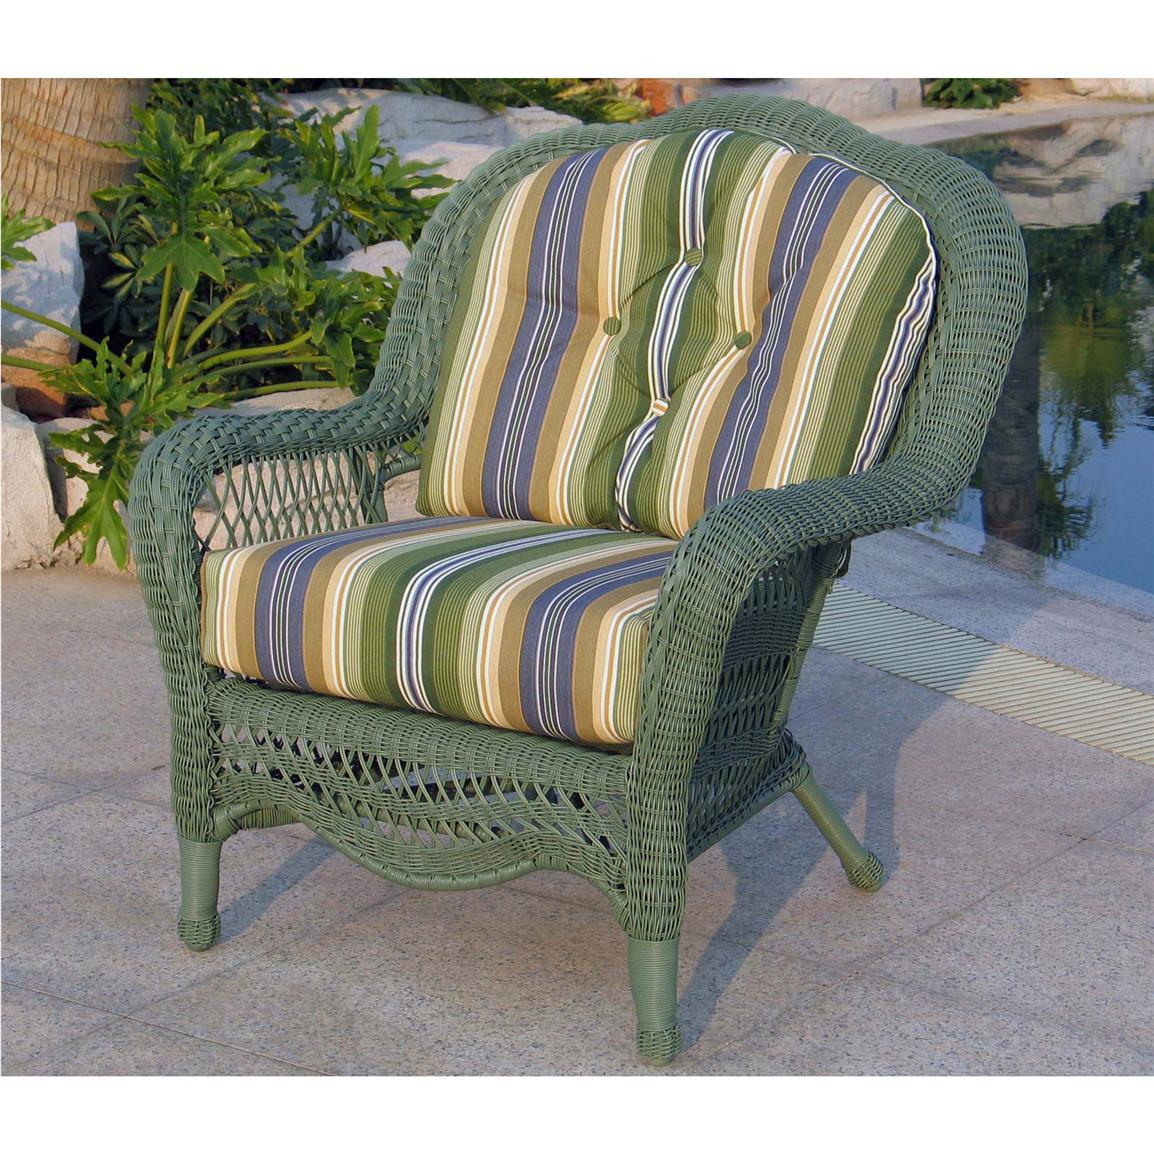 Chicago Wicker® Seaview 4